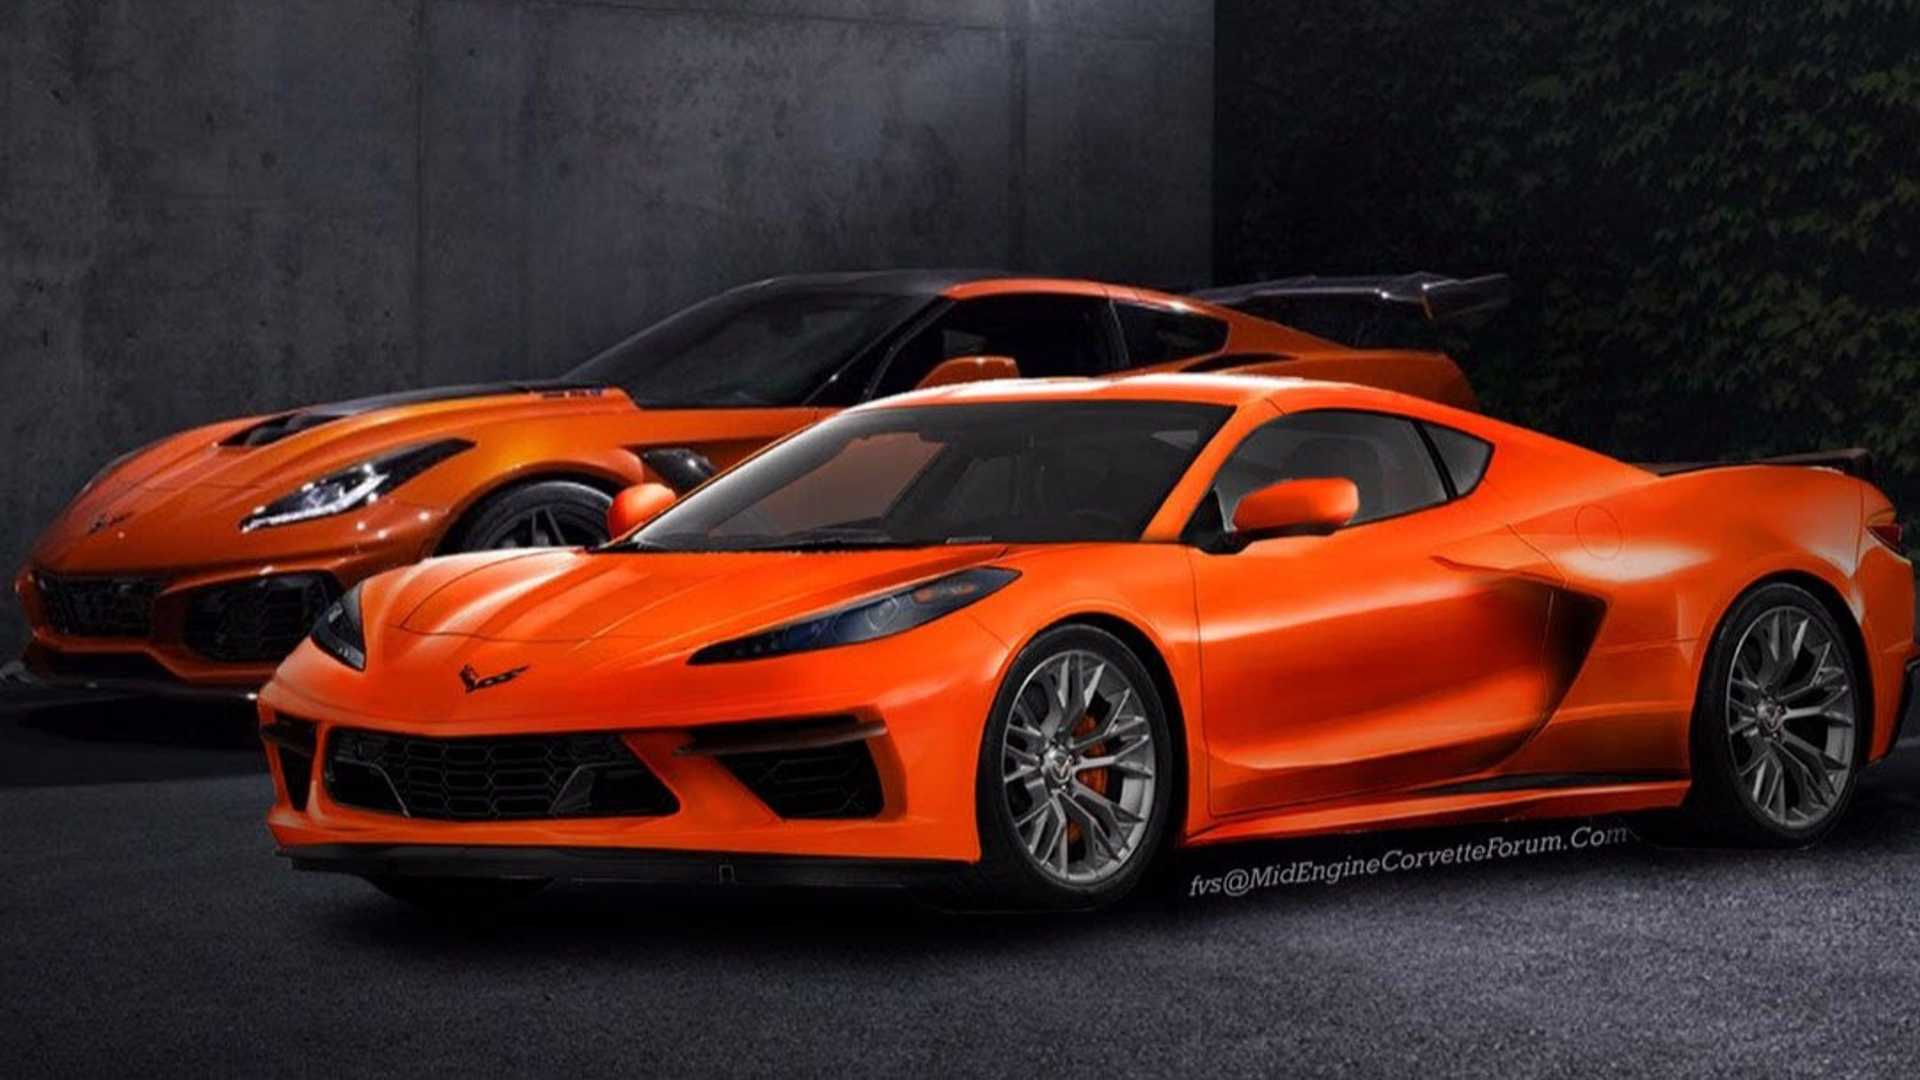 15 All New 2020 Chevrolet Corvette Images Redesign and Concept for 2020 Chevrolet Corvette Images